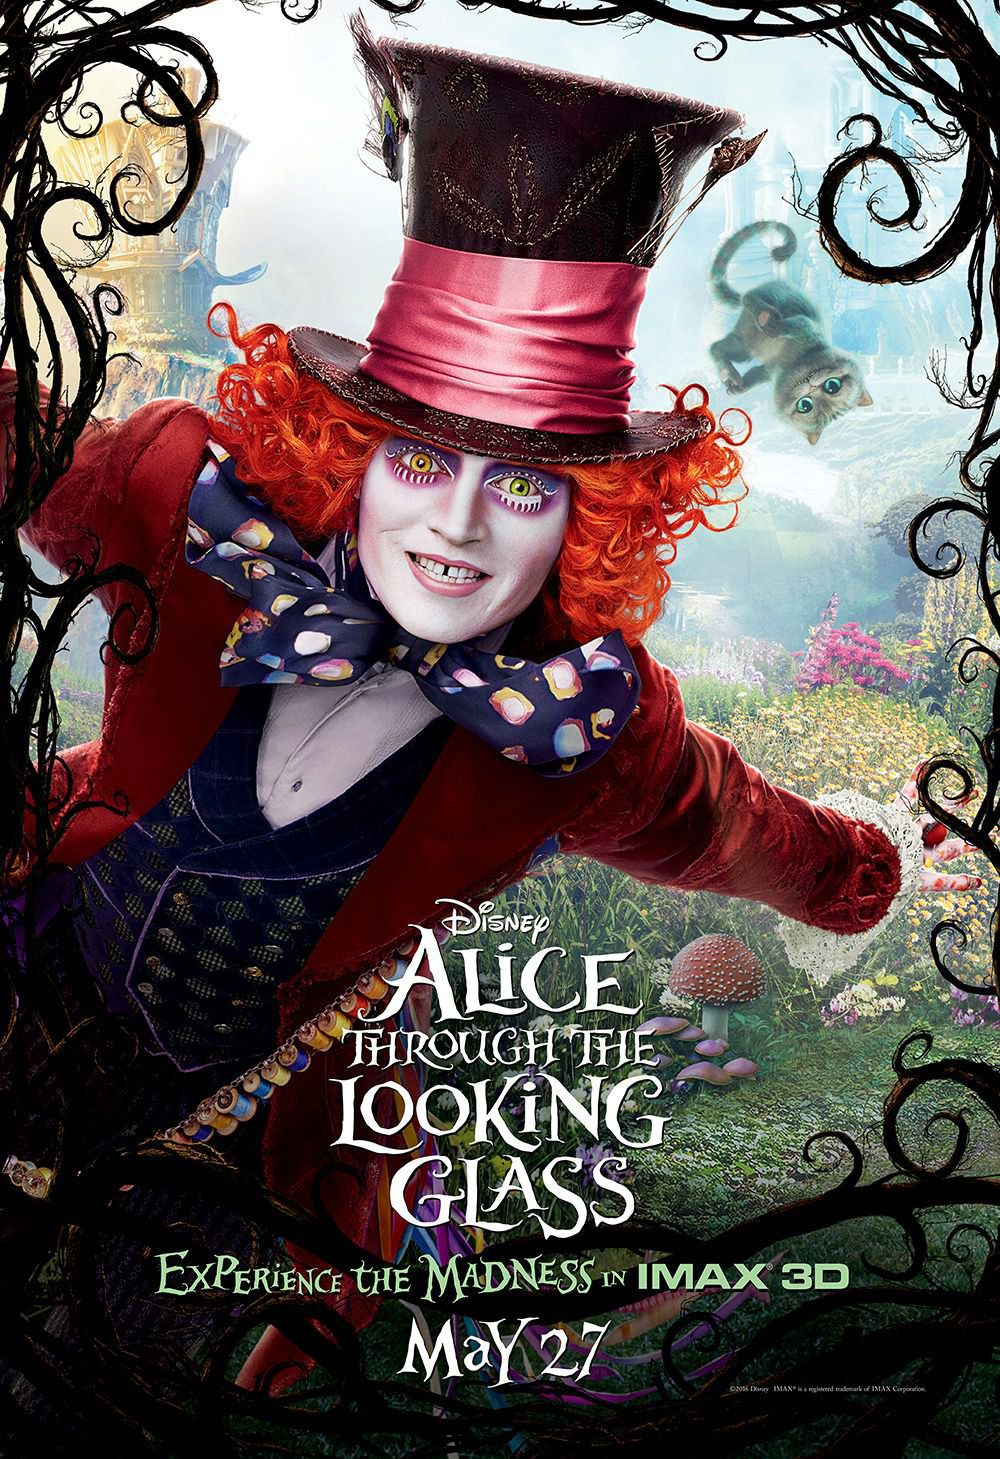 Johnny Depp - Mad Hatter - Cappellaio Matto